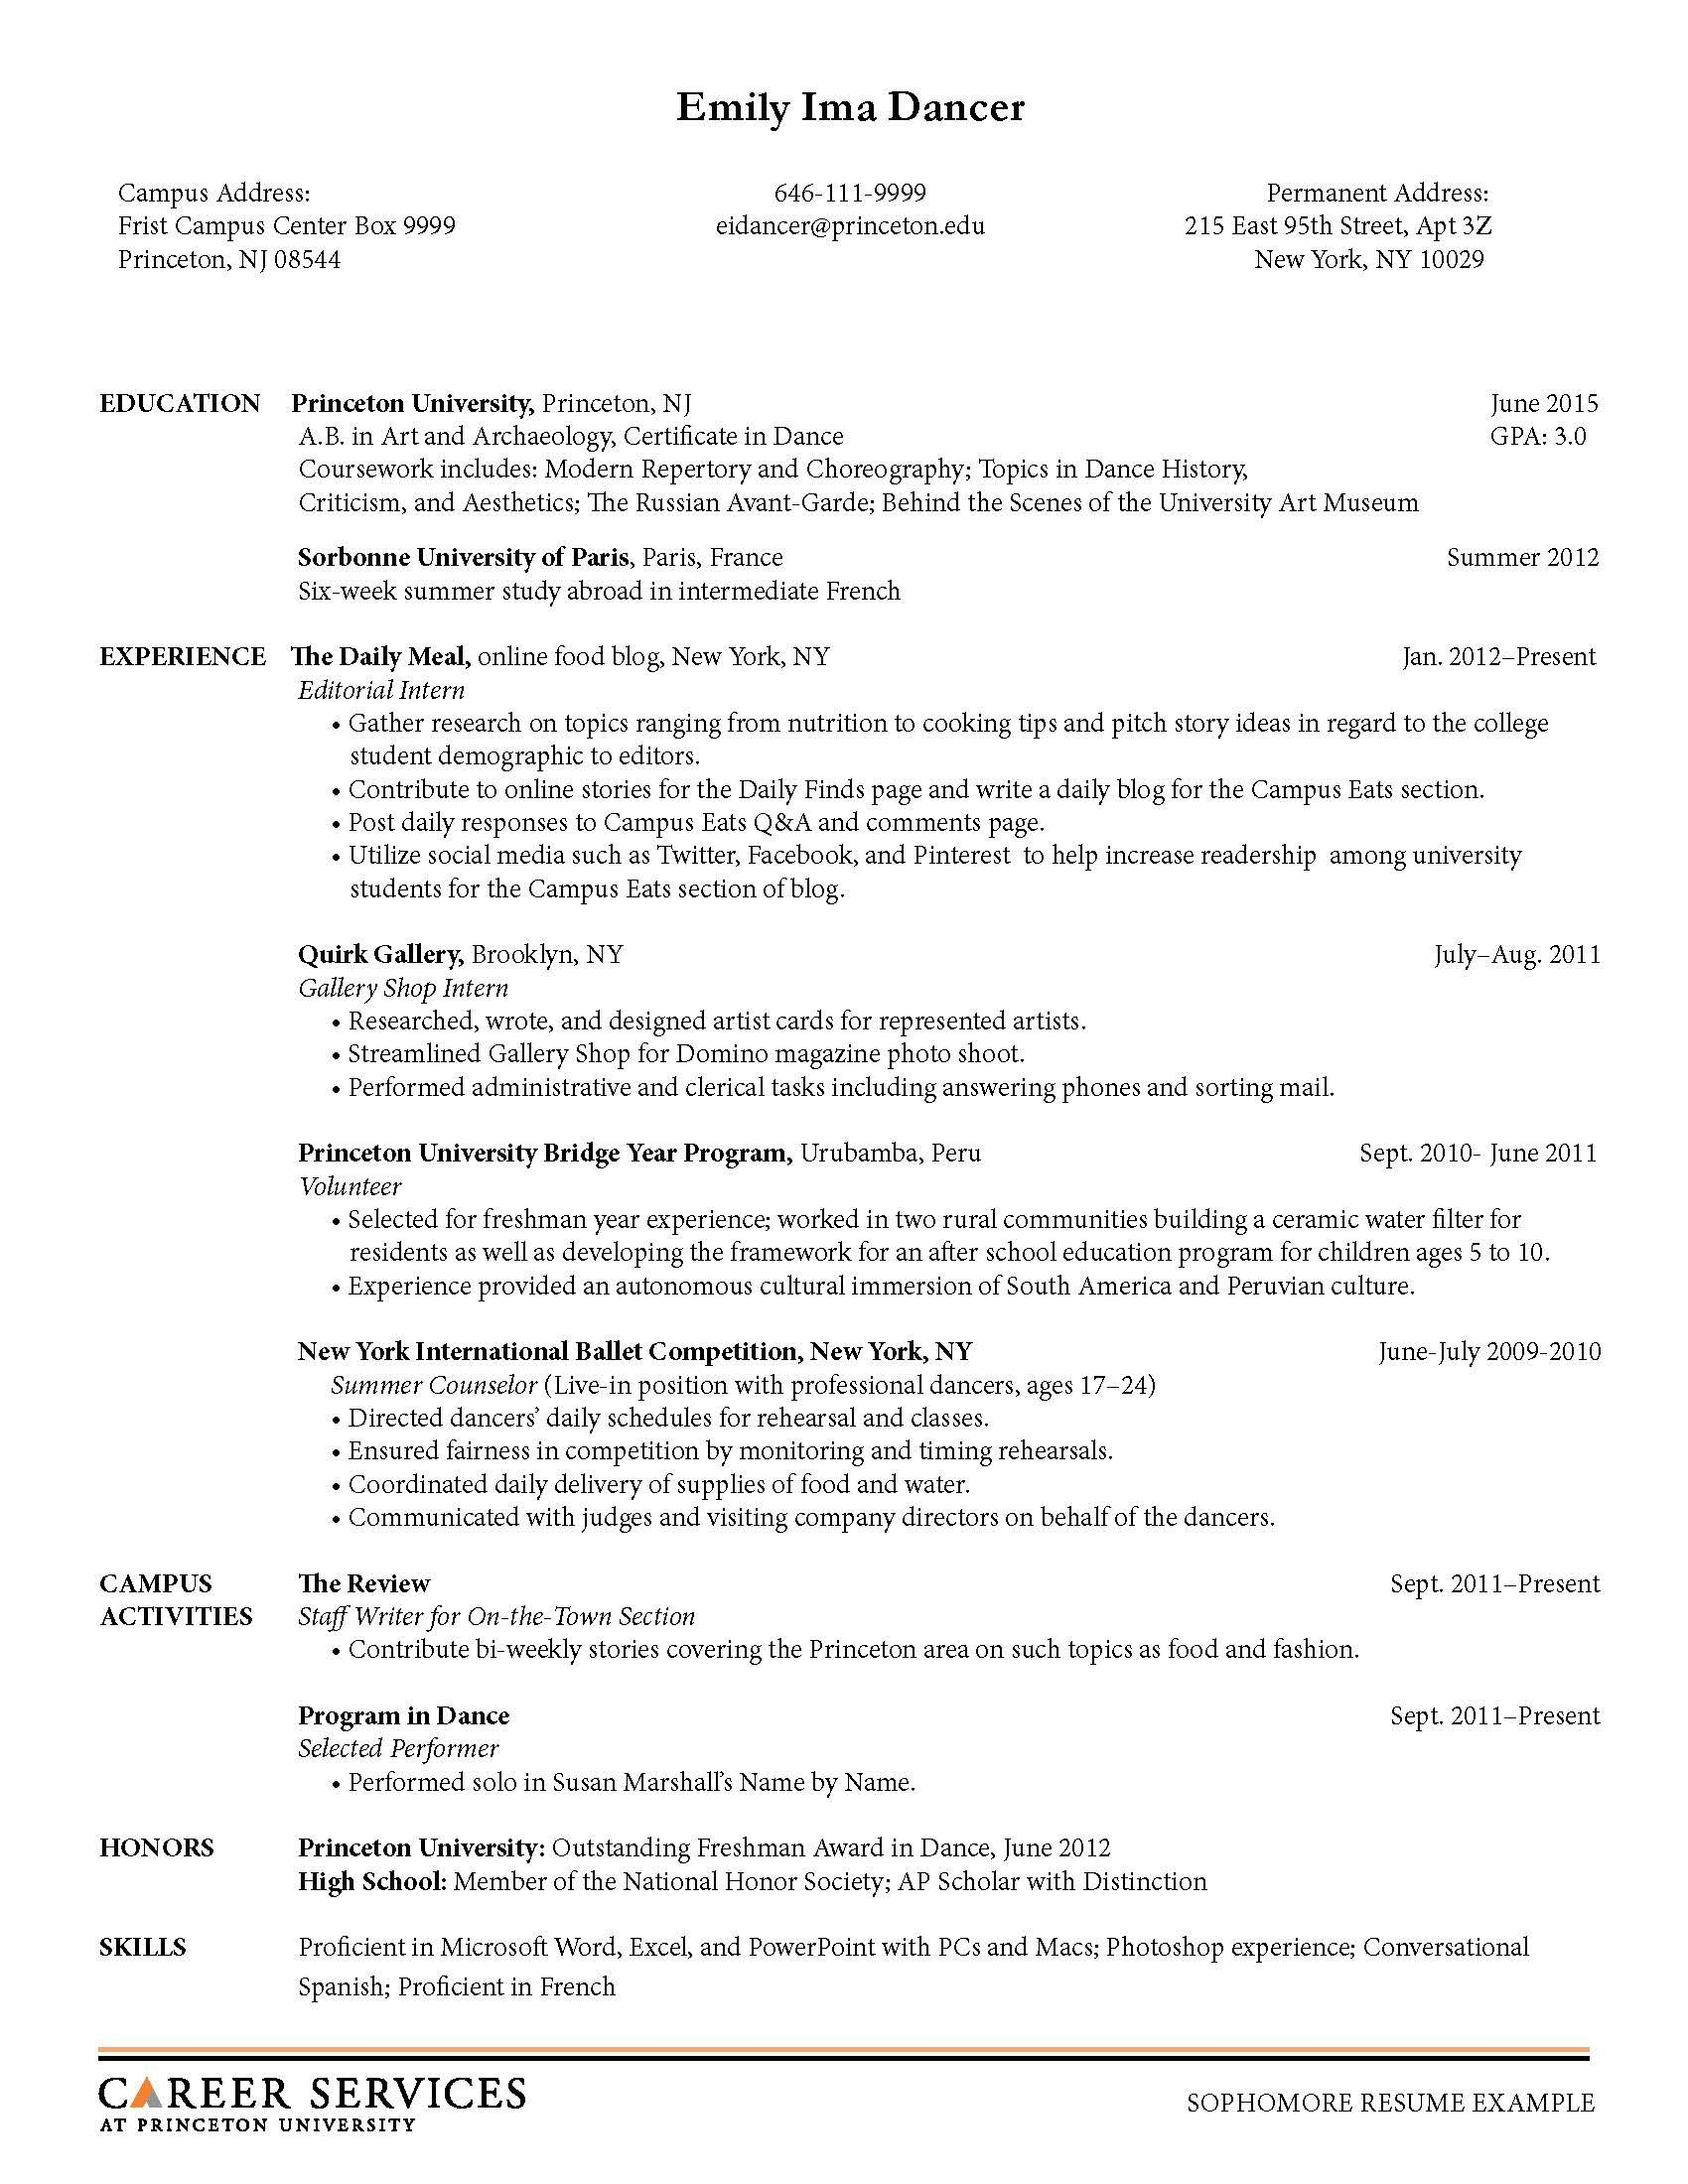 Picnictoimpeachus  Pleasant Sample Resume Resume And Career On Pinterest With Excellent Firefighter Resume Besides Make A Resume For Free Furthermore Strong Resume Words With Nice Marketing Manager Resume Also Google Docs Resume In Addition Create A Resume Free And How To Email A Resume As Well As Free Resumes Templates Additionally Work Resume Template From Pinterestcom With Picnictoimpeachus  Excellent Sample Resume Resume And Career On Pinterest With Nice Firefighter Resume Besides Make A Resume For Free Furthermore Strong Resume Words And Pleasant Marketing Manager Resume Also Google Docs Resume In Addition Create A Resume Free From Pinterestcom